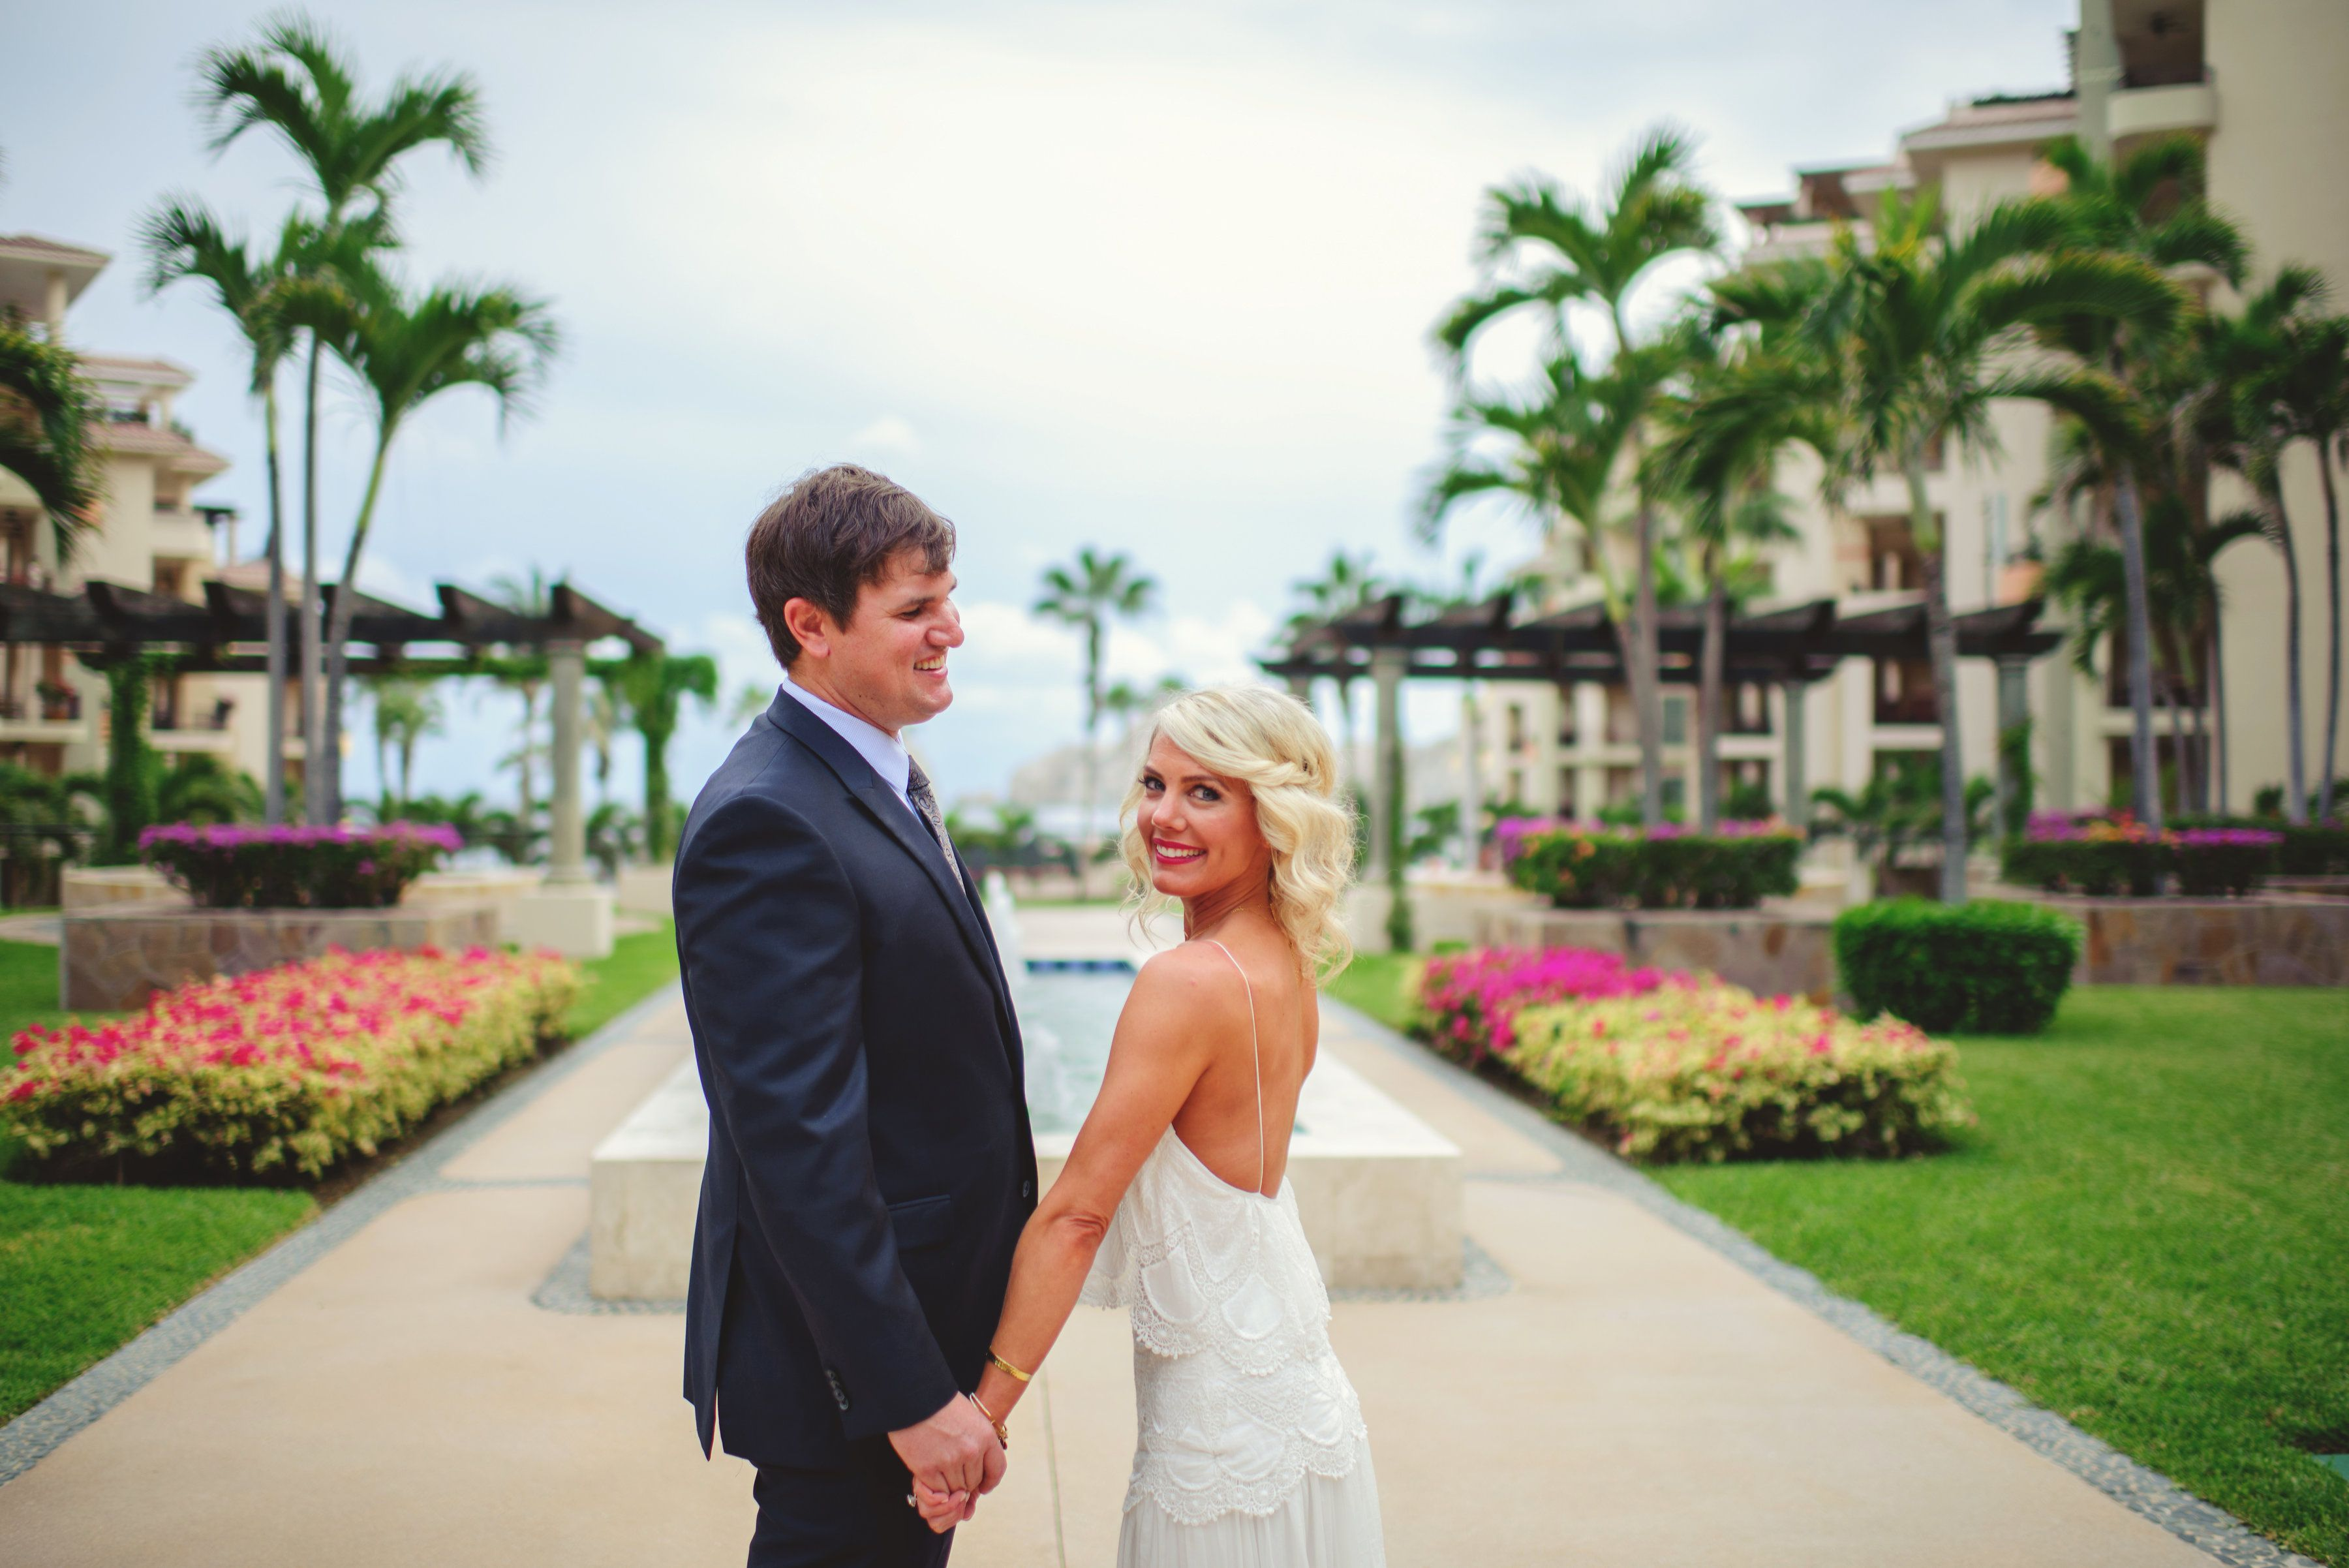 Bride and groom getting photo session at Villa de la Estancia in Cabo San Lucas, Mexico, right before their Wedding Ceremony at their Destination Wedding in Mexico. Wedding Planning by Cabo Wedding Services.